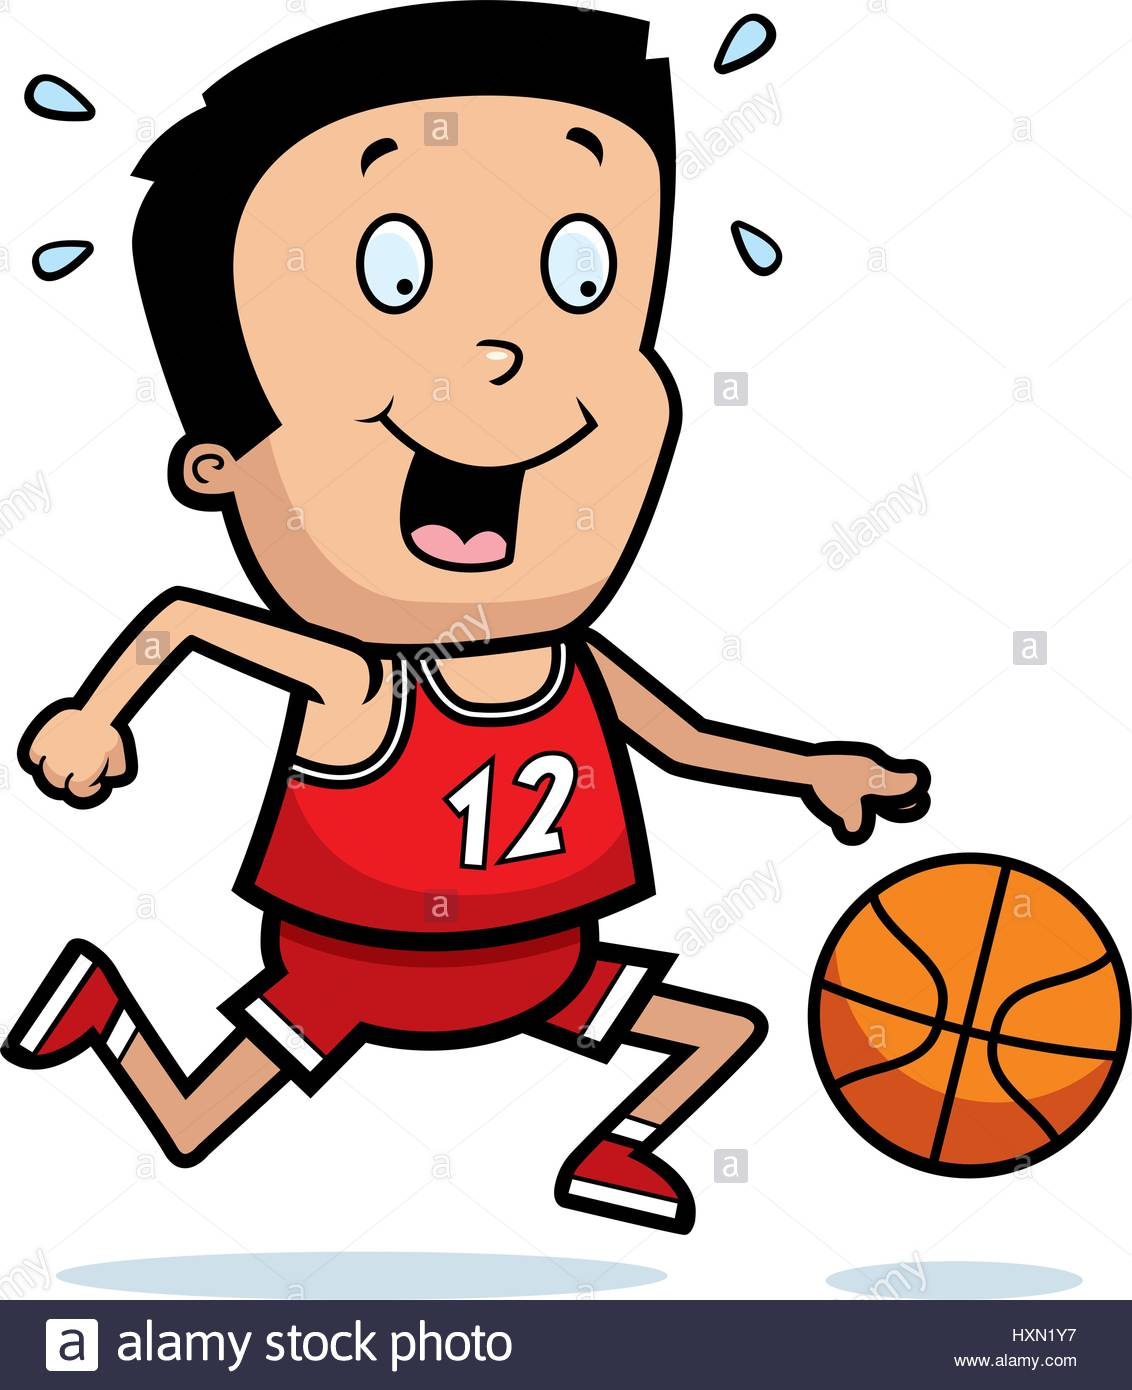 1132x1390 A Cartoon Illustration Of A Boy Playing Basketball Stock Vector